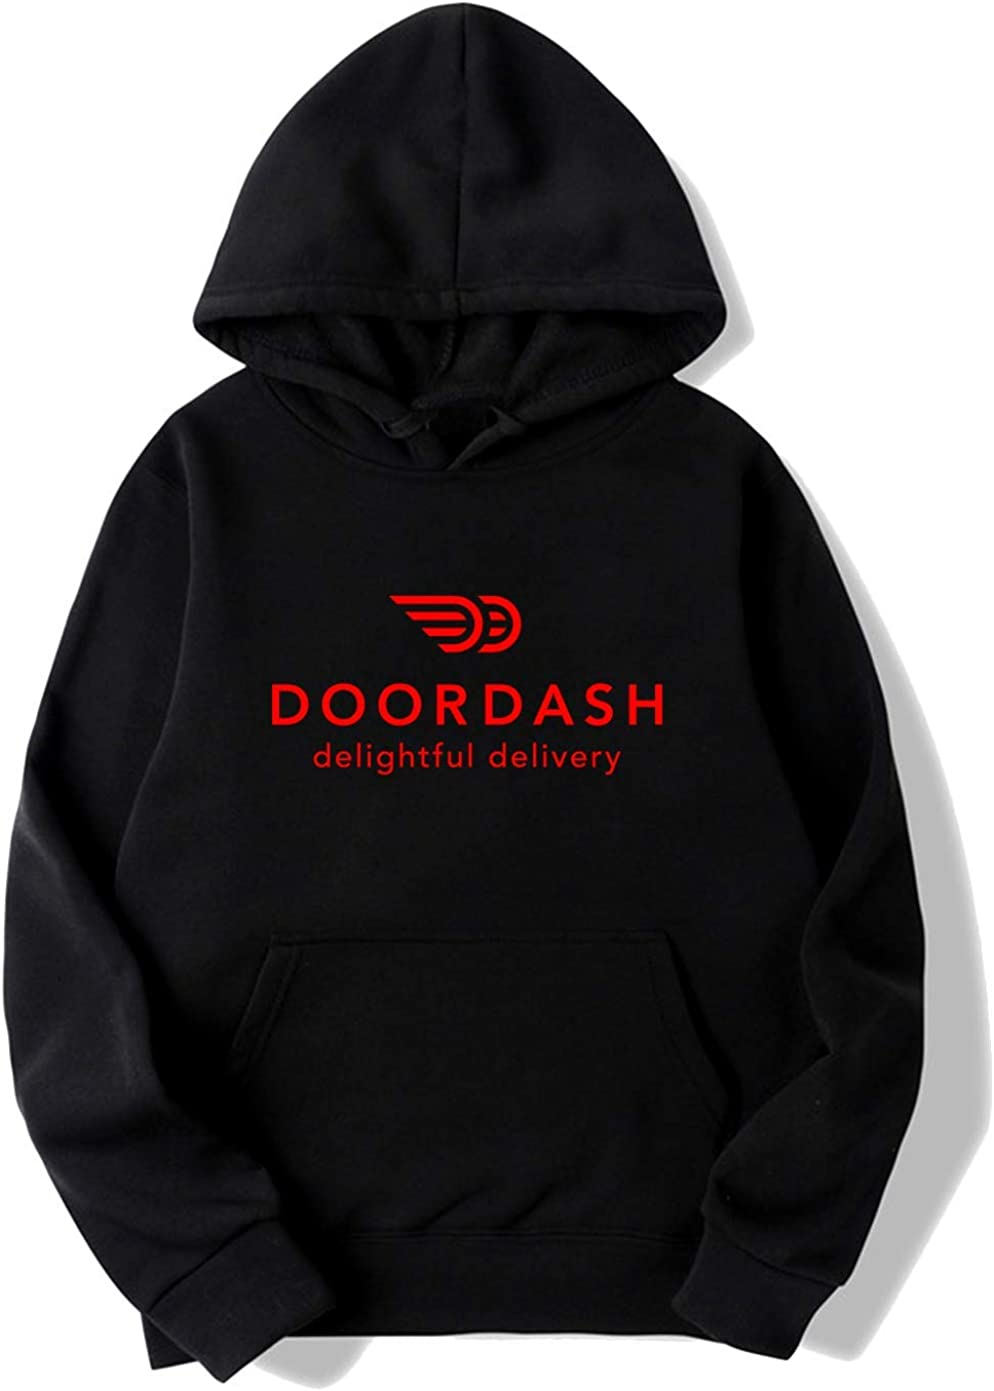 baoqing DoorDash Delightful Delivery Hoodies Sweatshirt for Mens